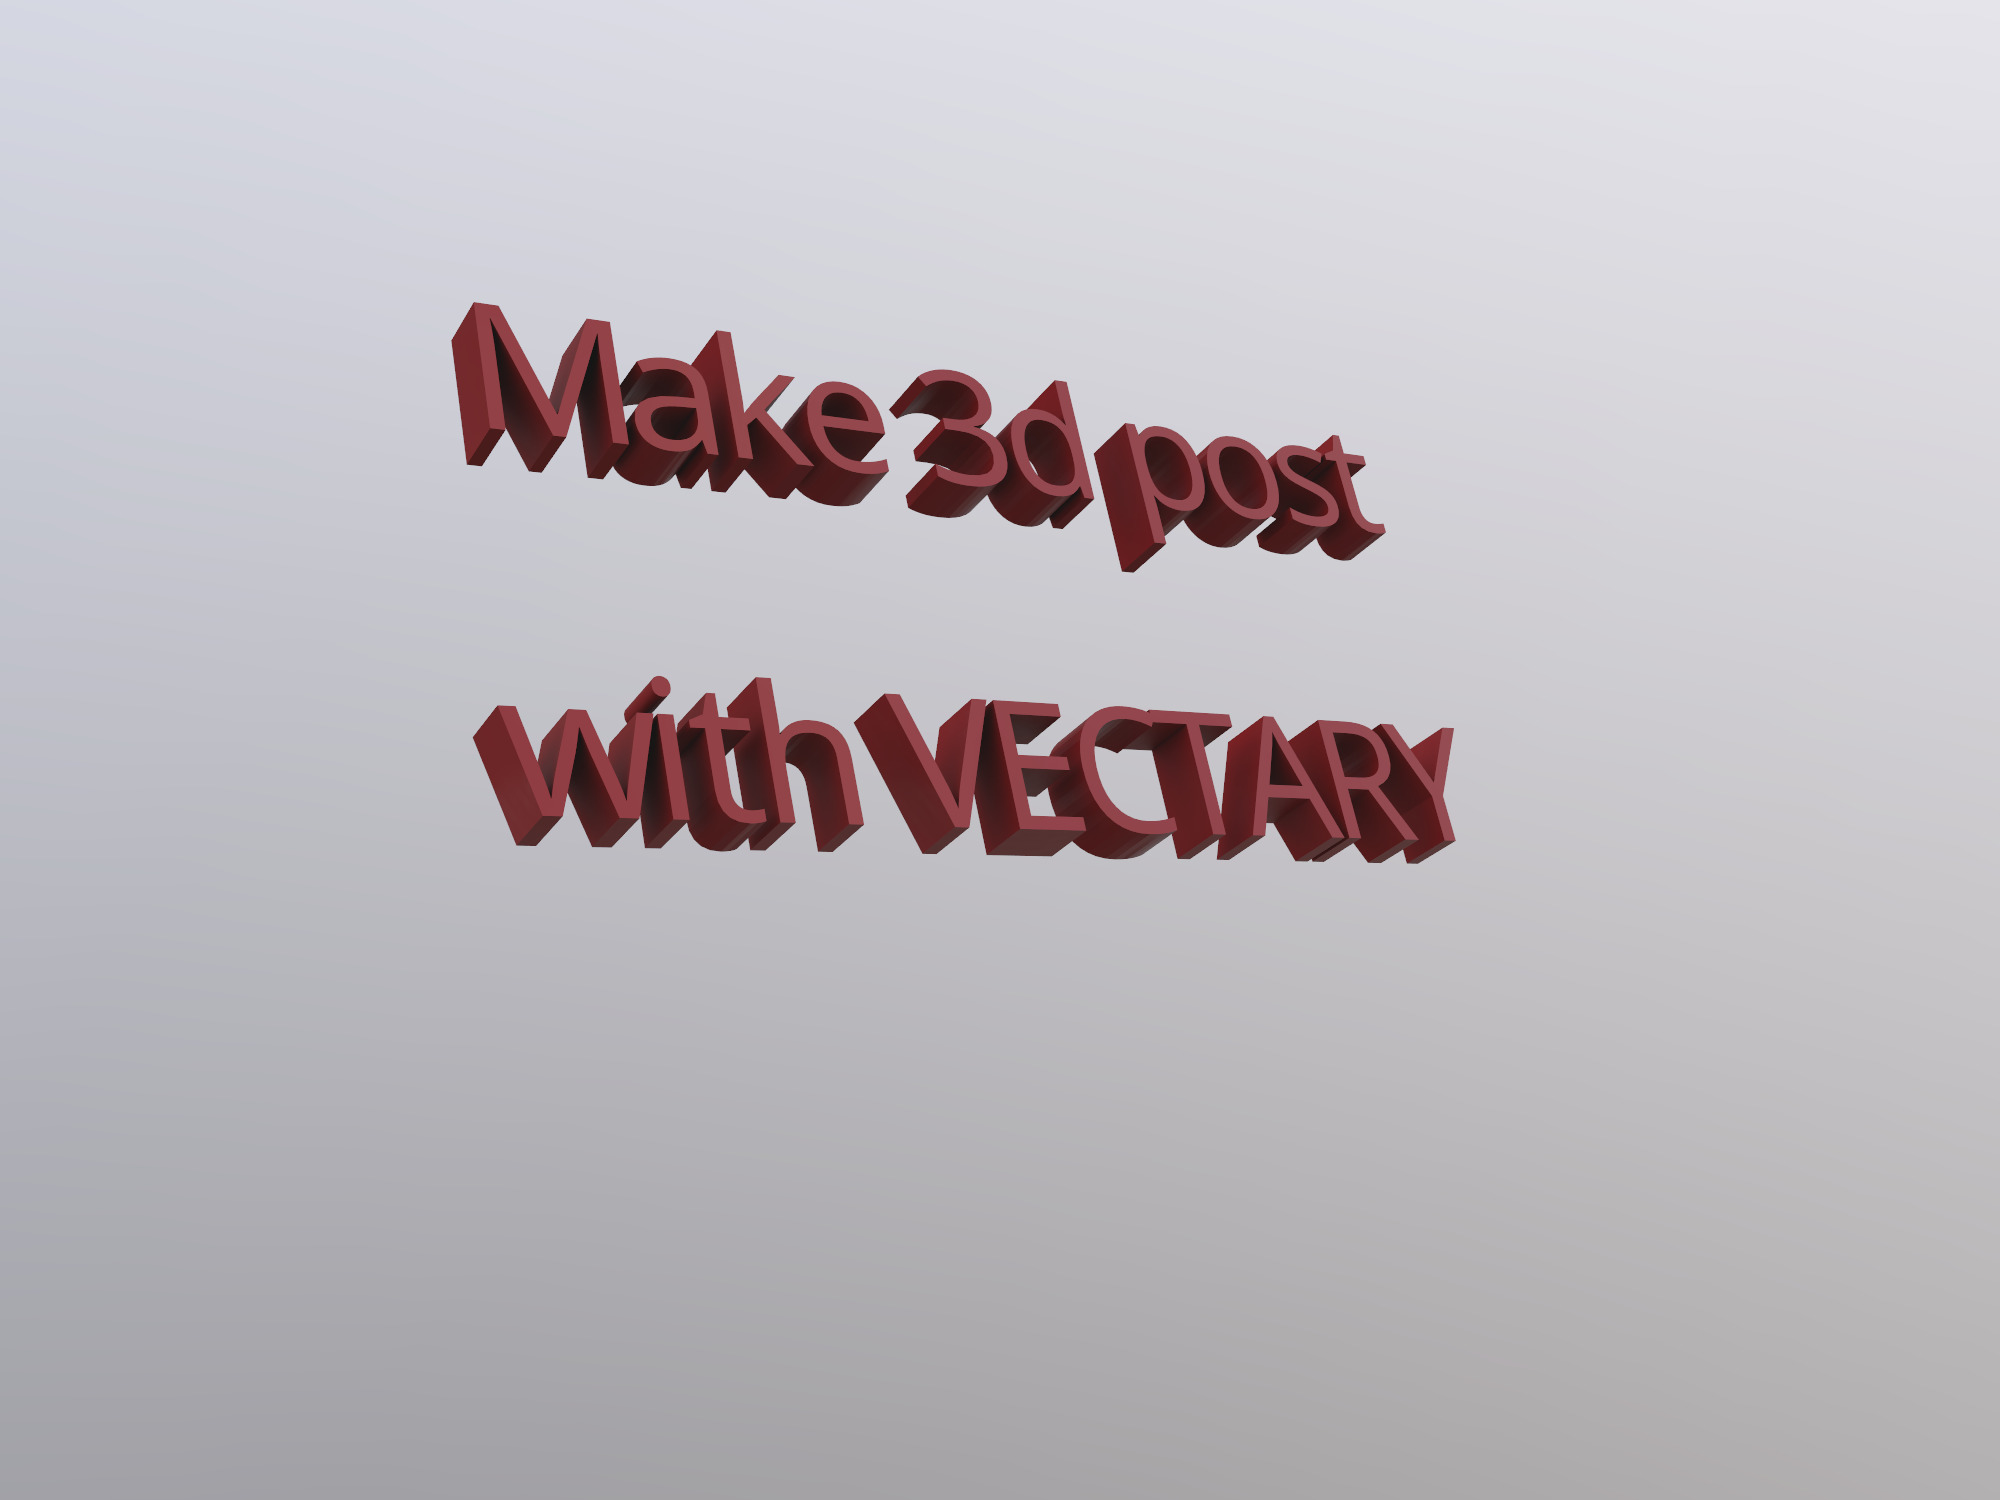 I like VECTARY - 3D design by Shane Cory Potter Jul 3, 2018